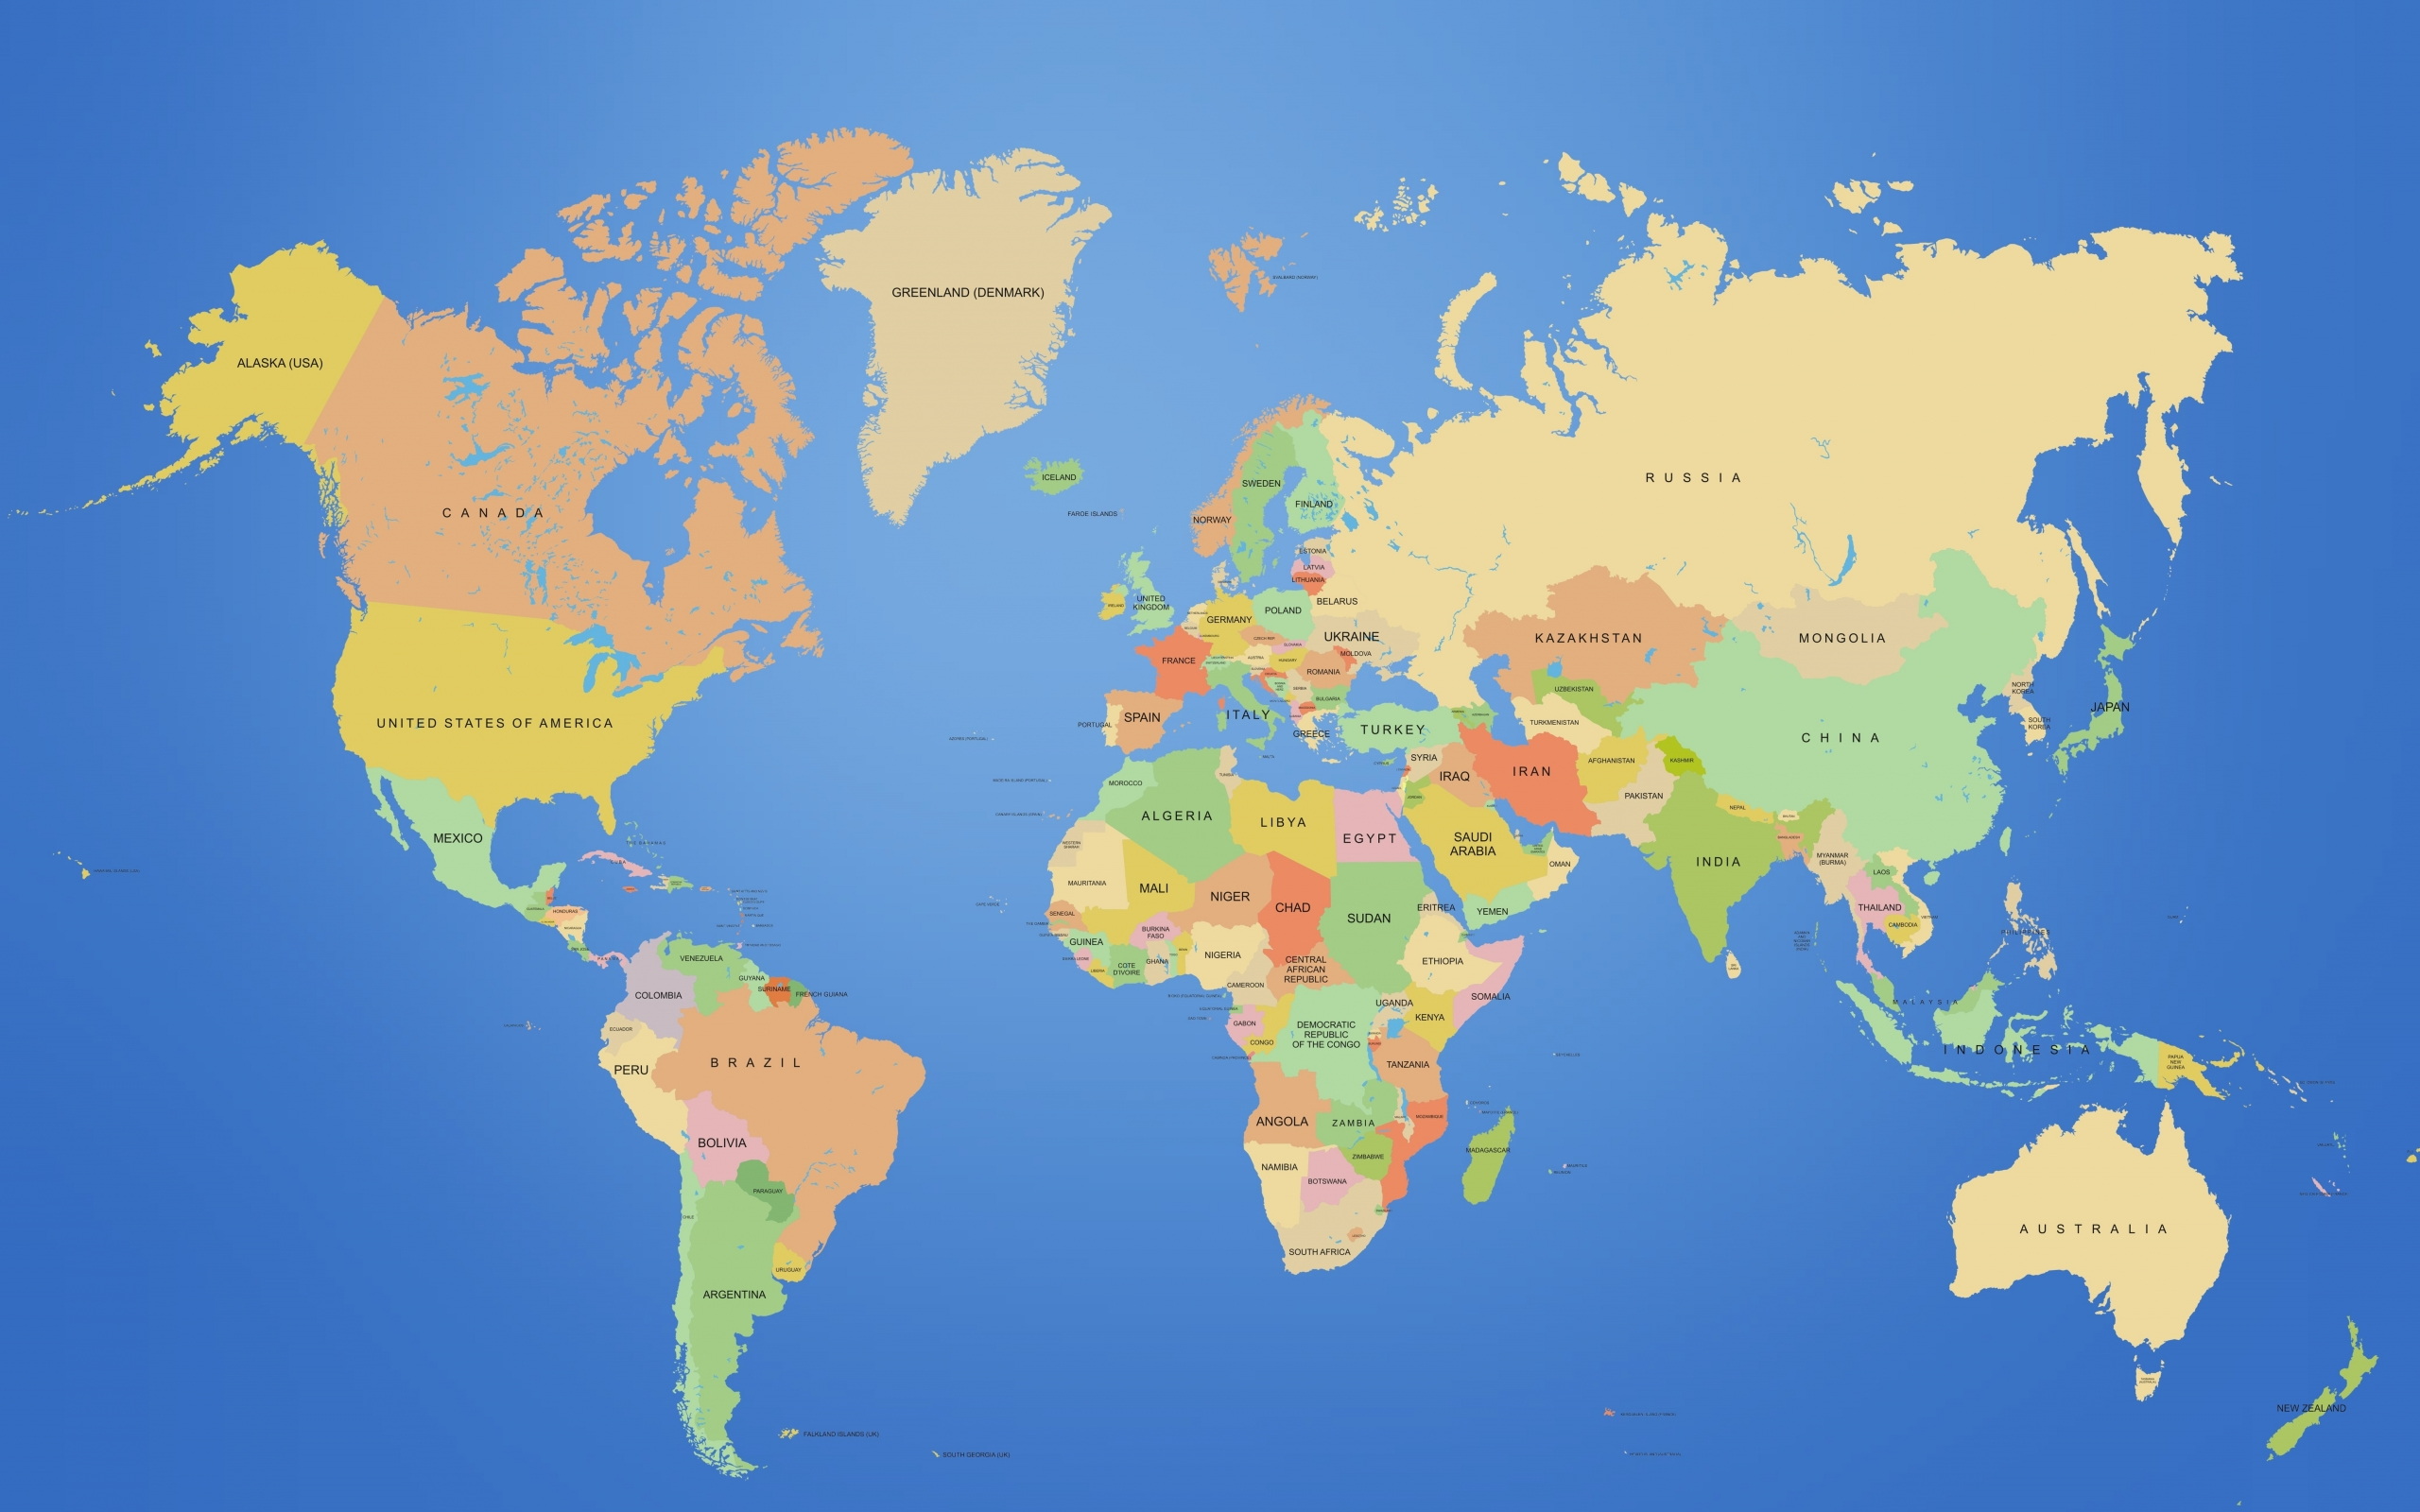 Free Download Maps Countries World Map 6500x4333 Wallpaper